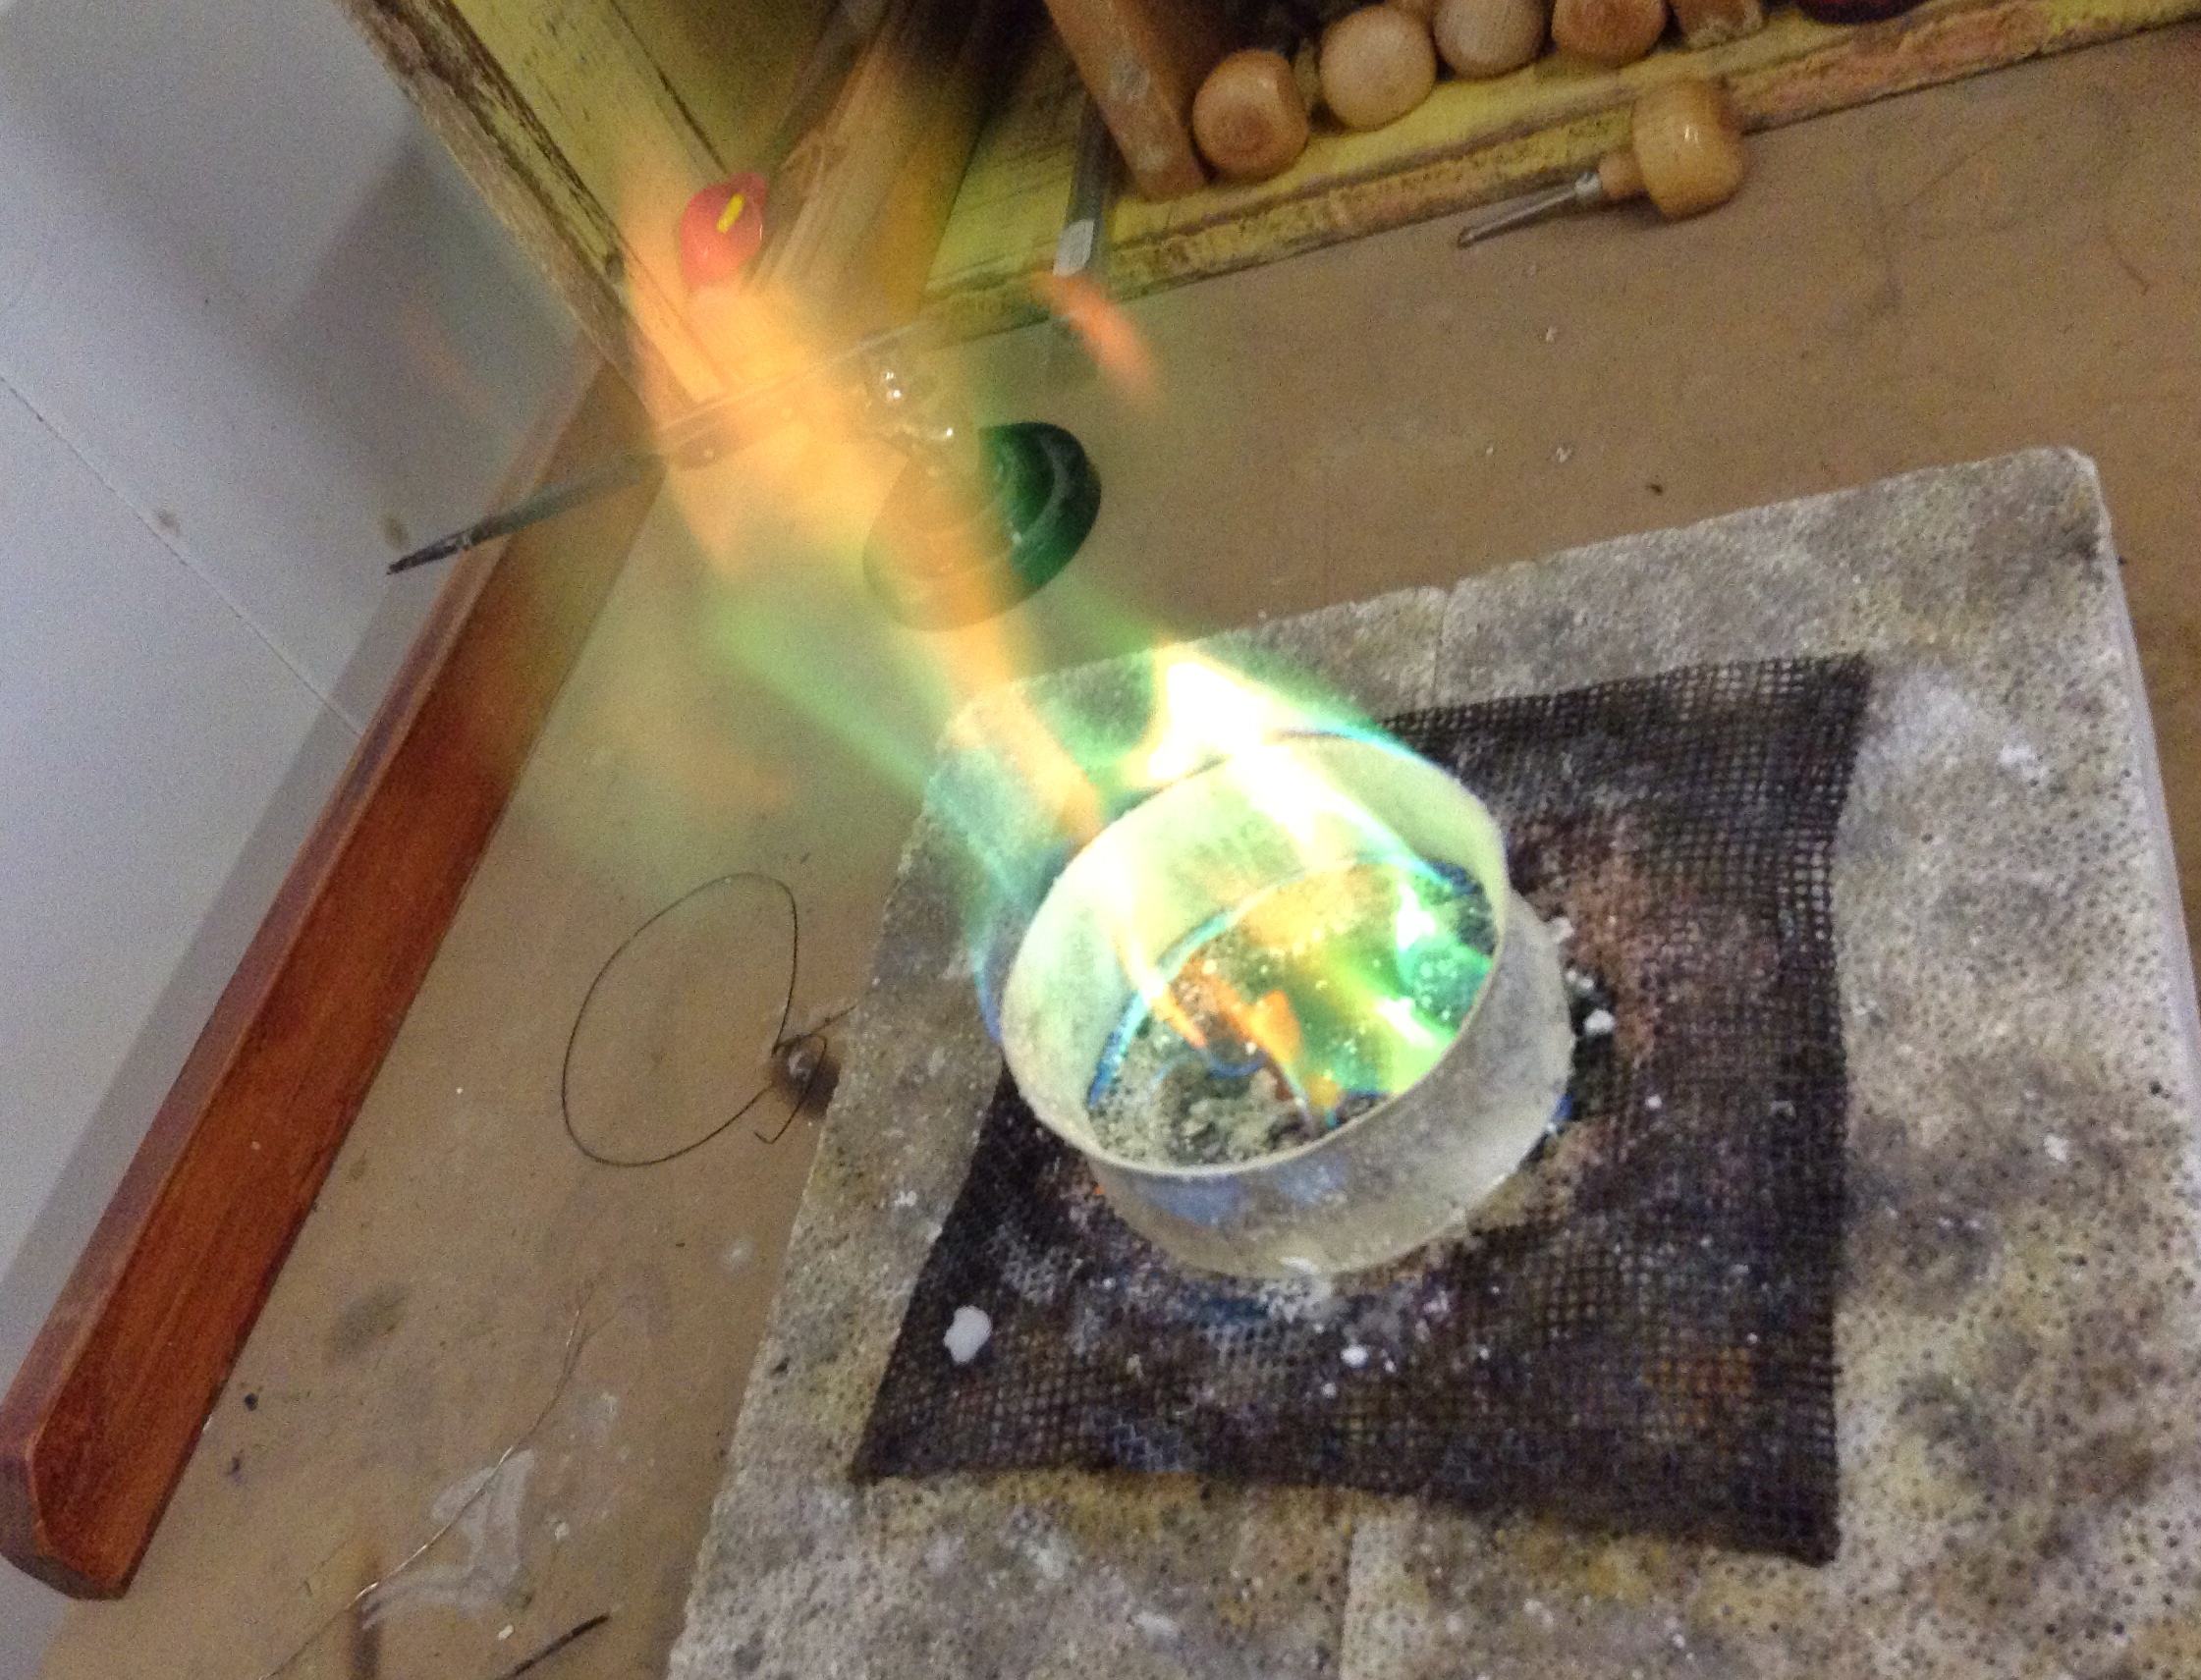 Burning off a resist powder applied to the metal before annealing (softening to forge).  The powder helps with resisting a stain on silver known as firescale.